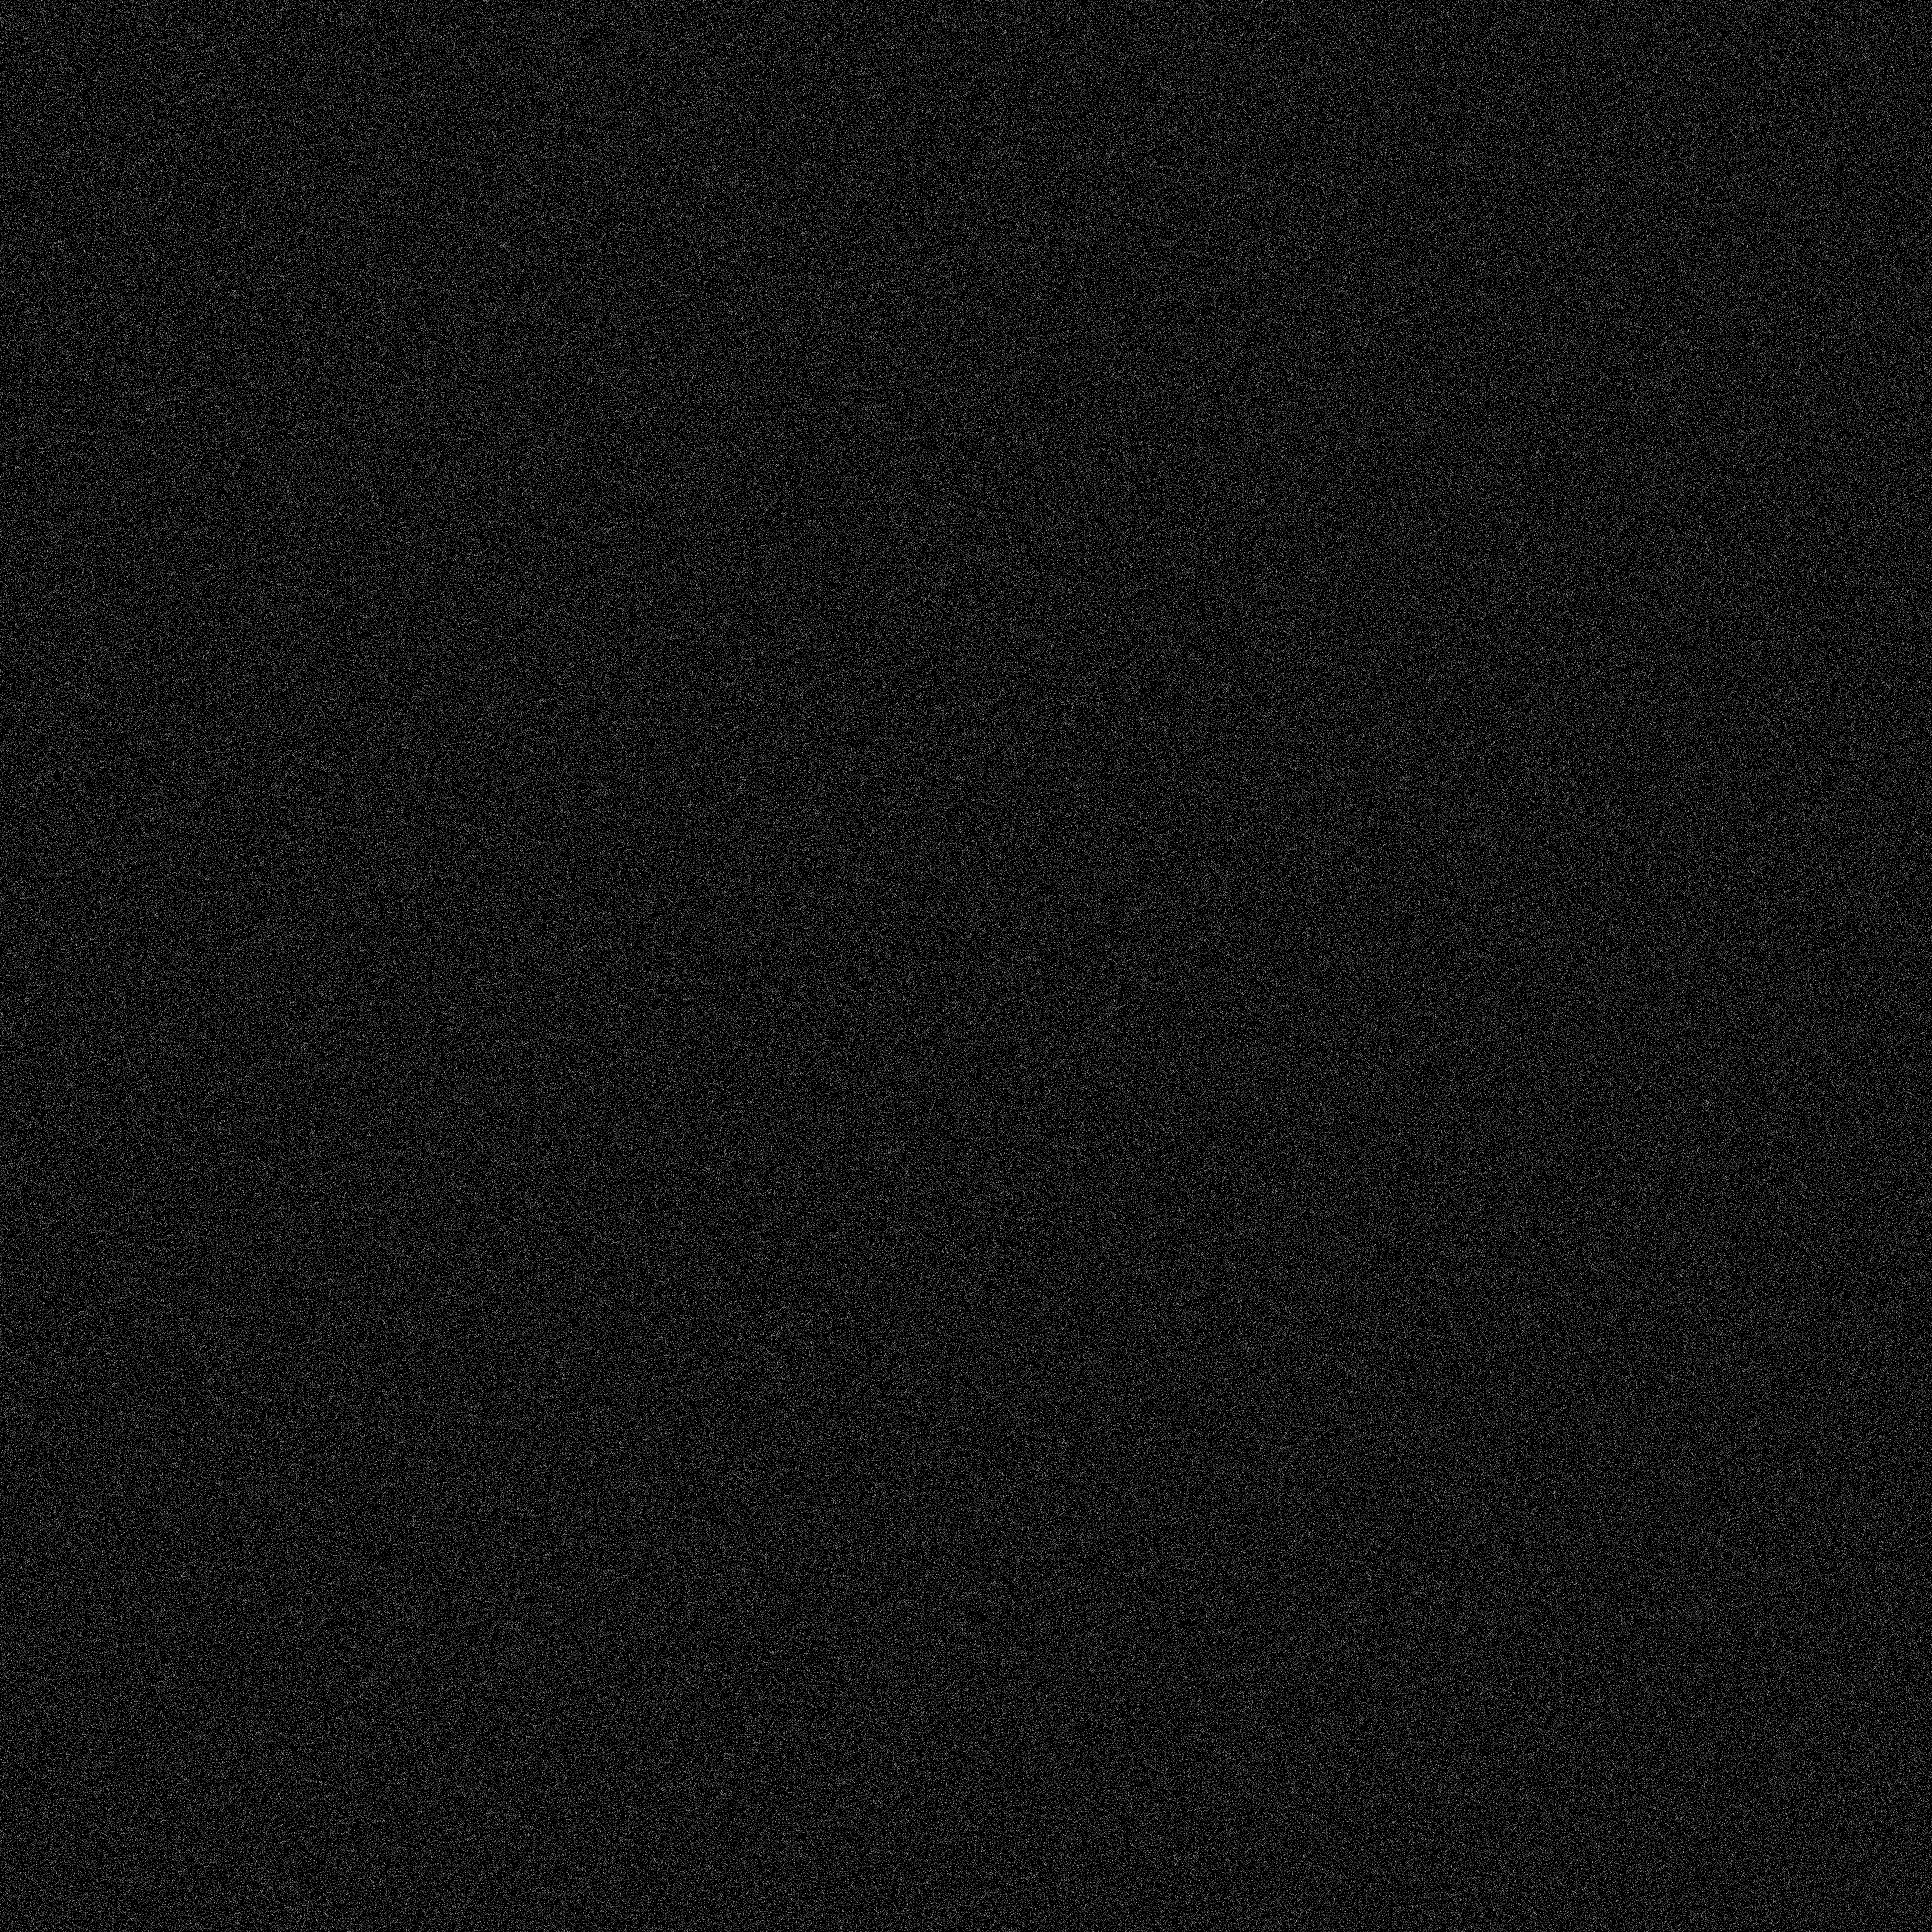 noize_background_black